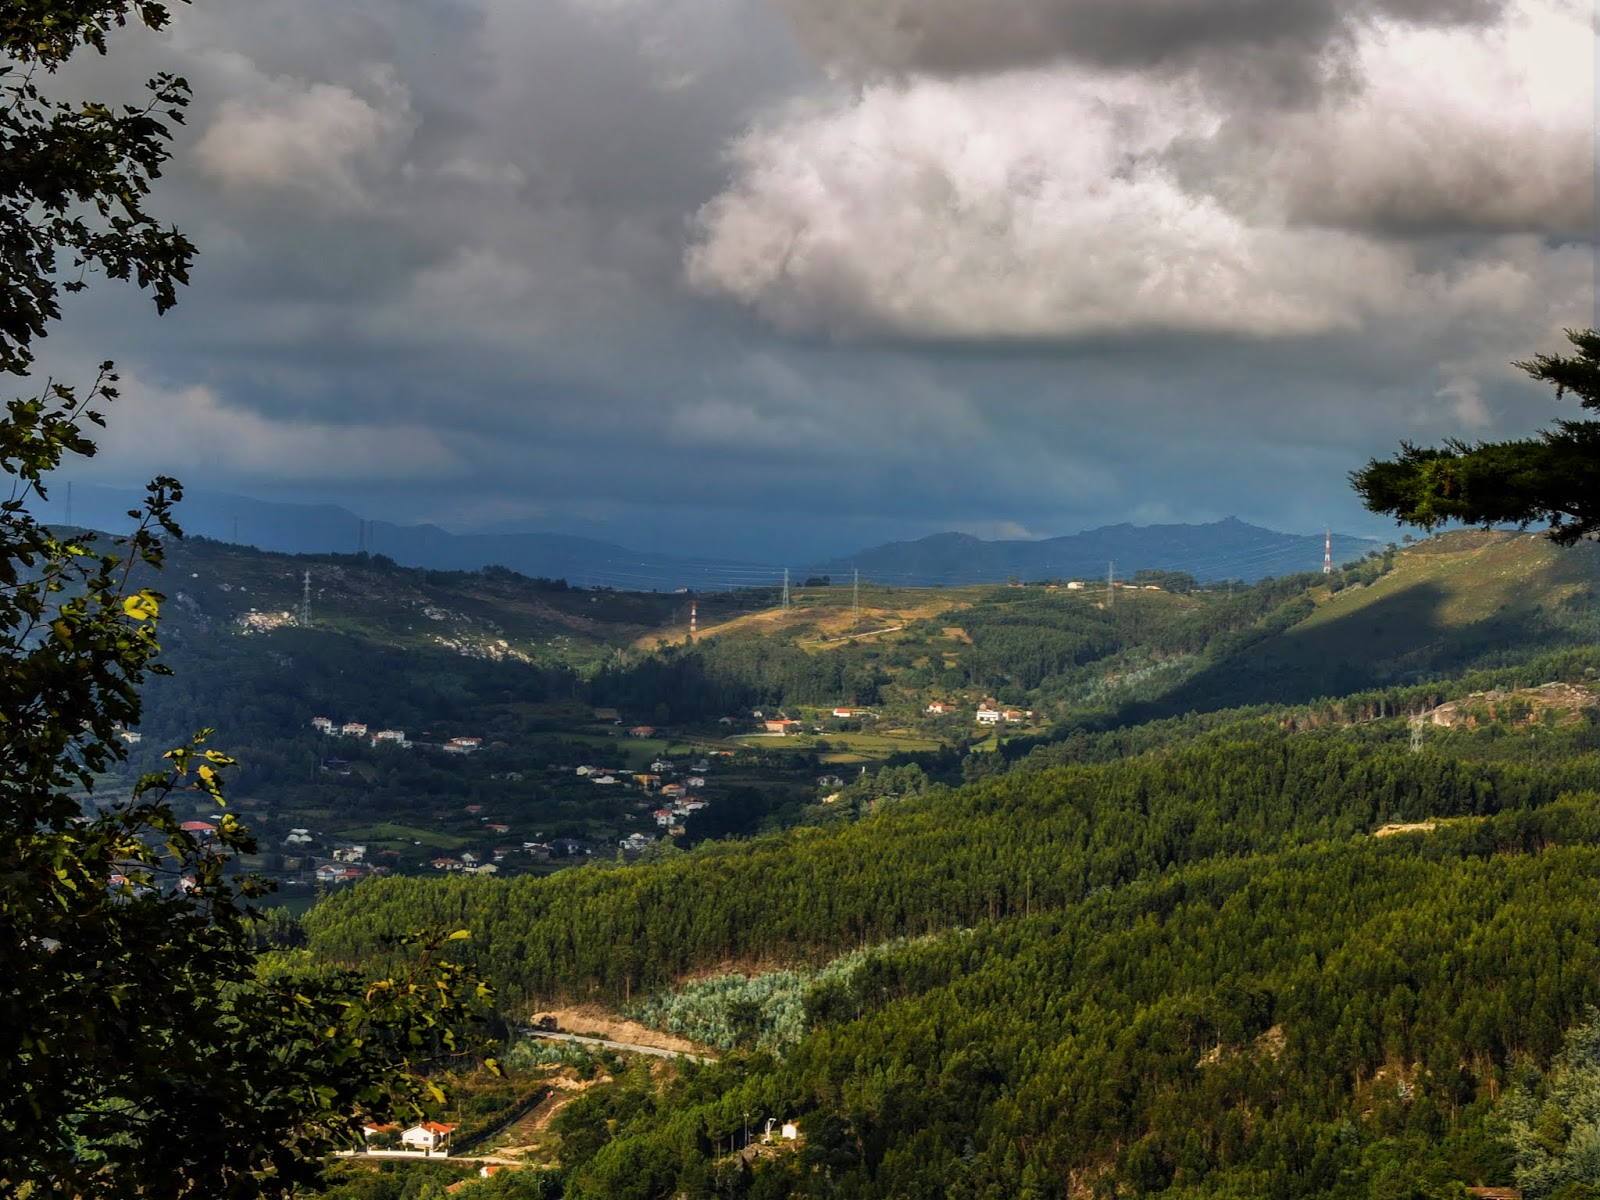 A mountainous landscape of Braga in the north-west of Portugal.